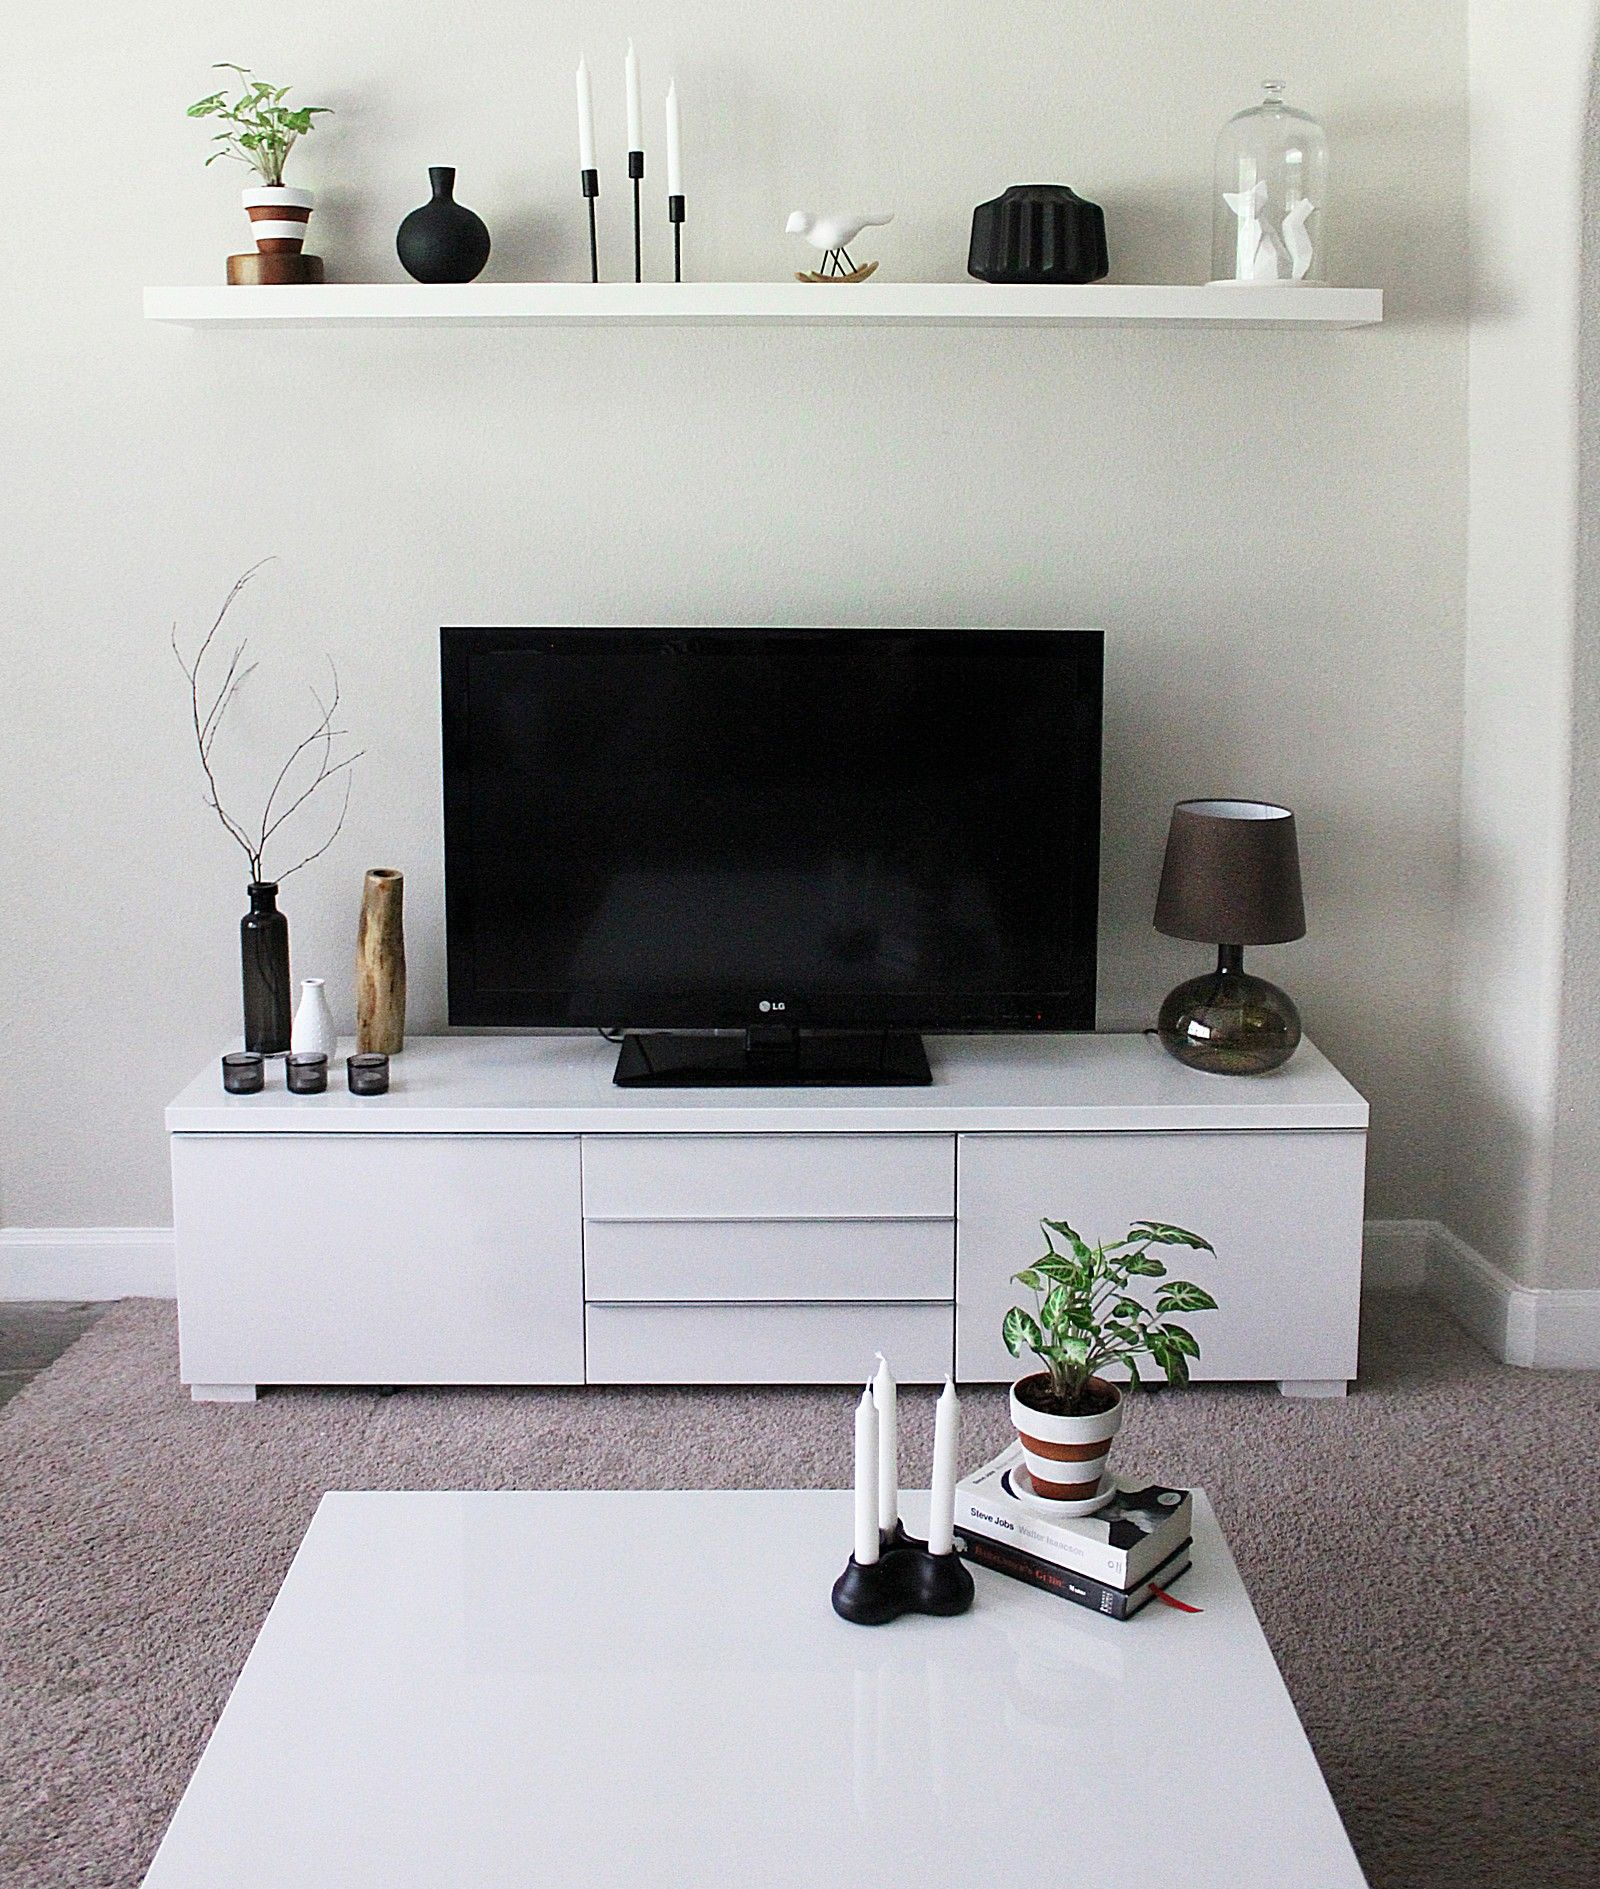 Minimalist TV Stand and Cabinet IKEA Besta | Interiors Design Ideas ...